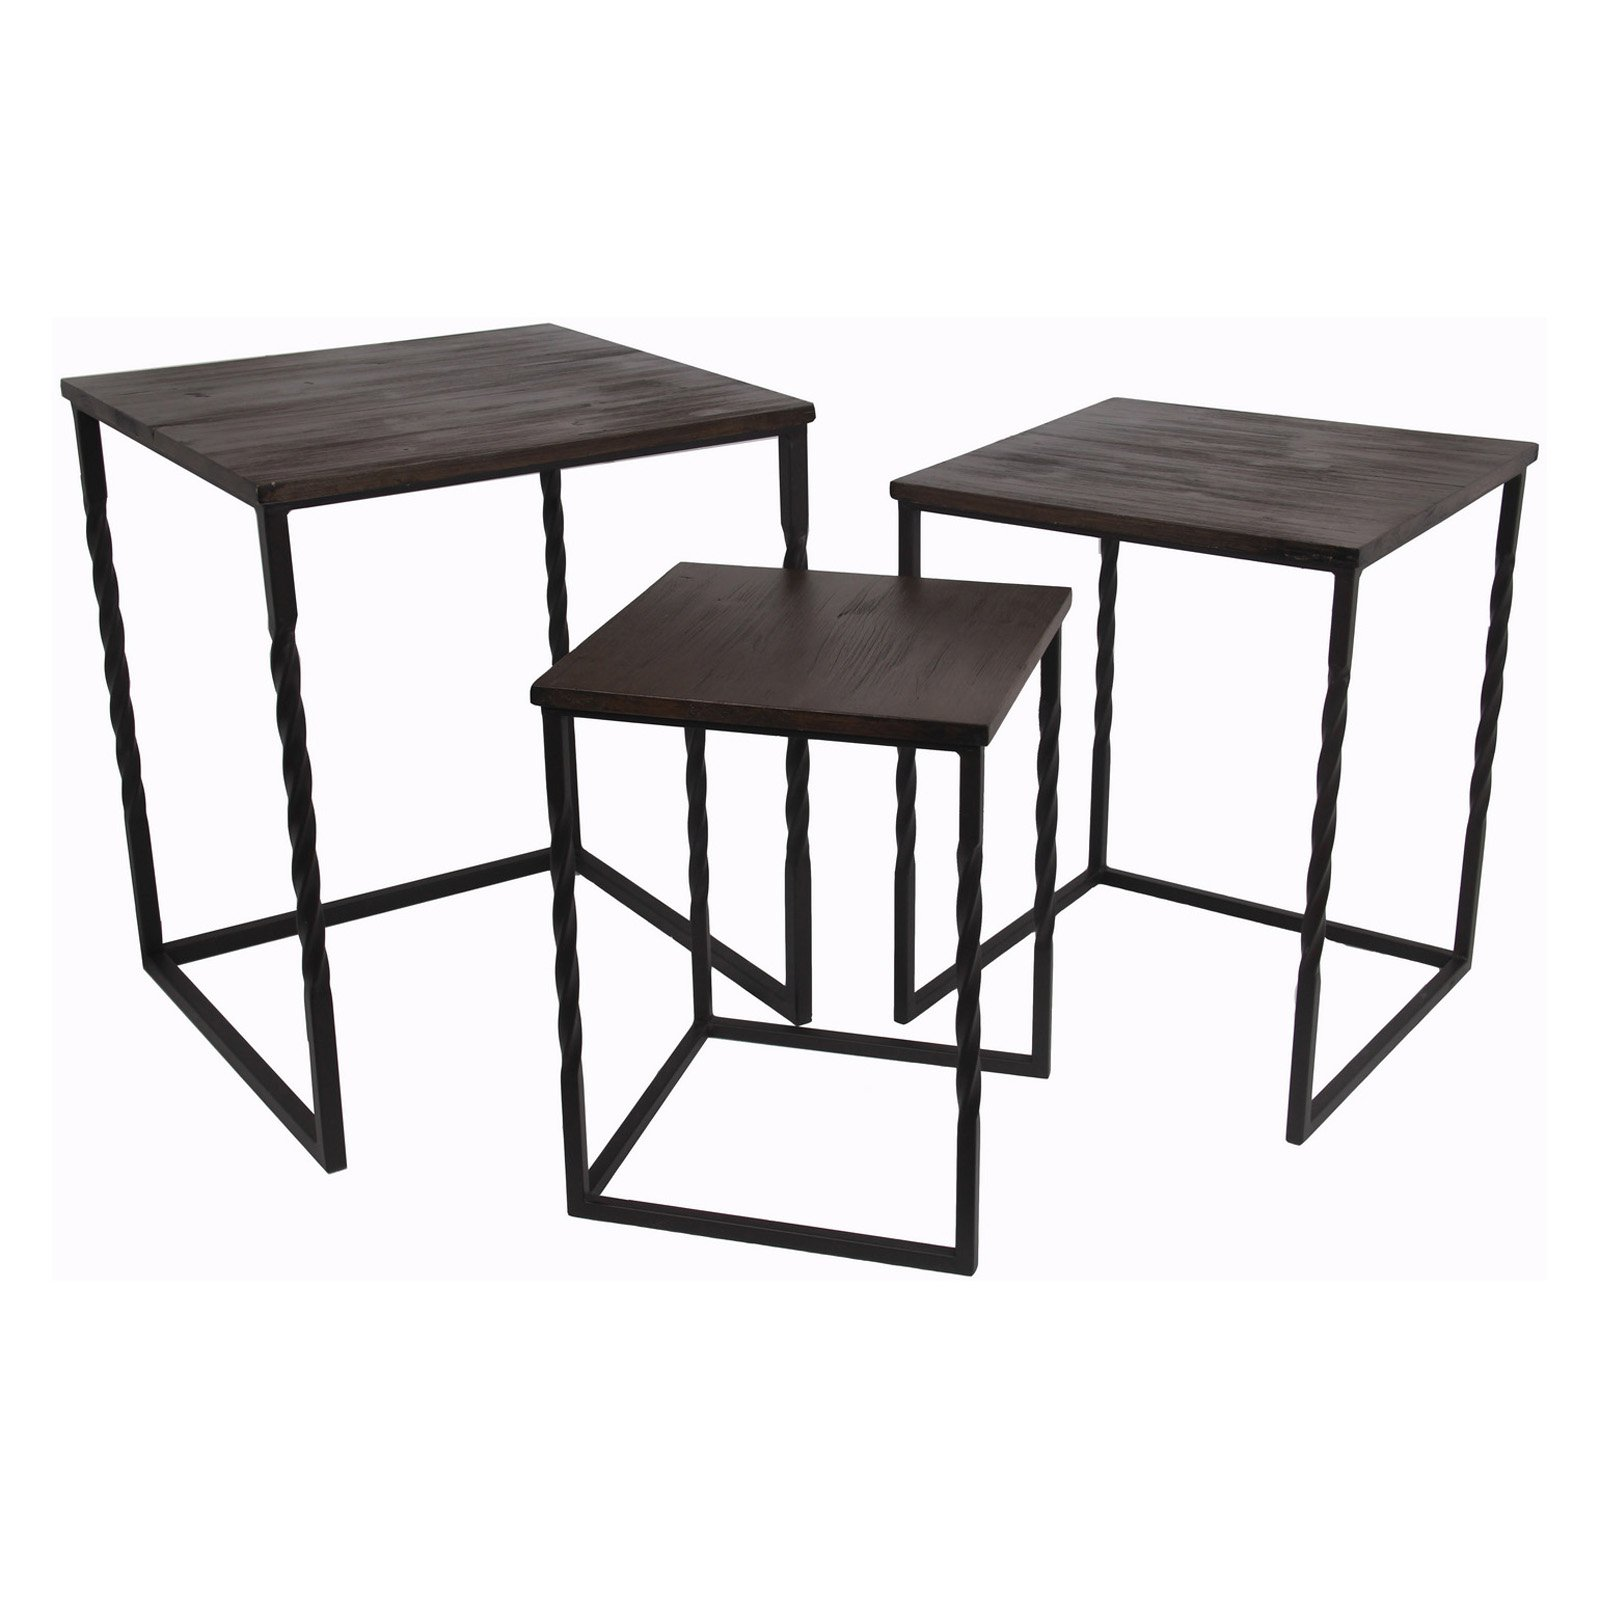 Privilege International Squared Tables - Set of 3